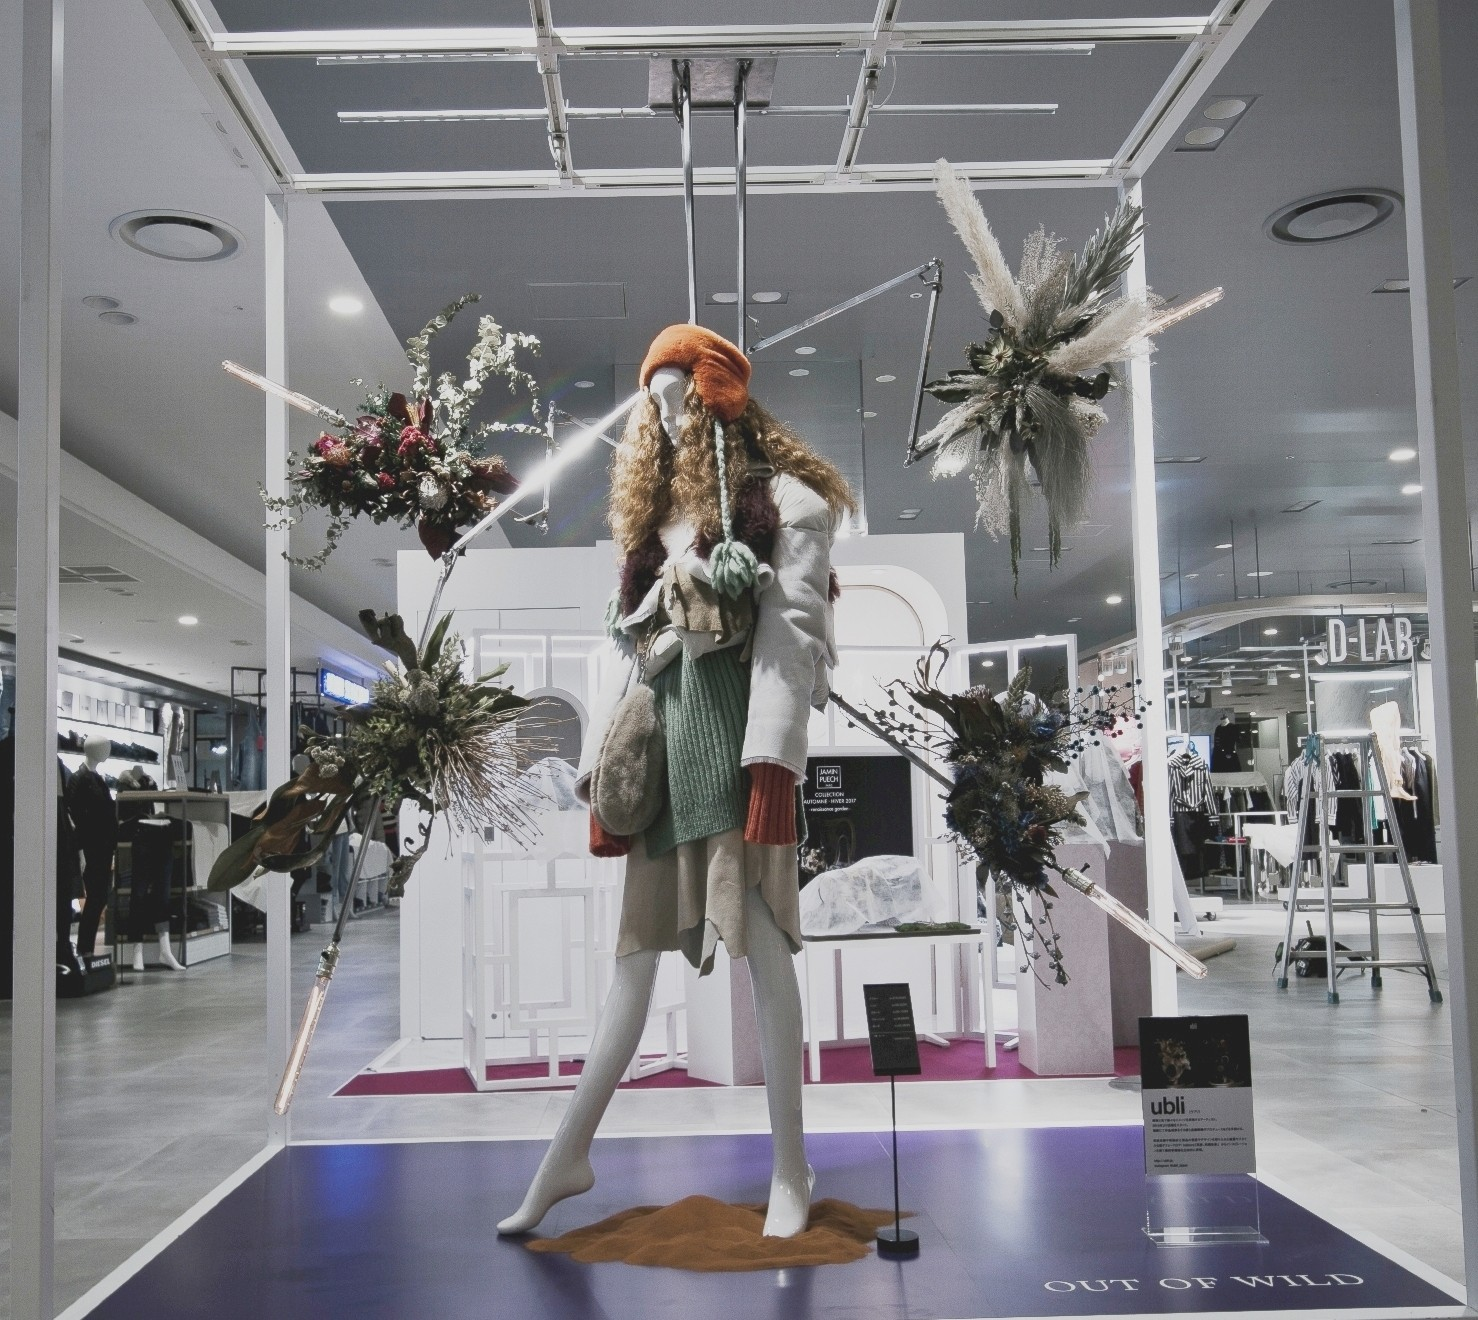 HANKYU MODE×ARTIST COLLABORATION DISPLAY